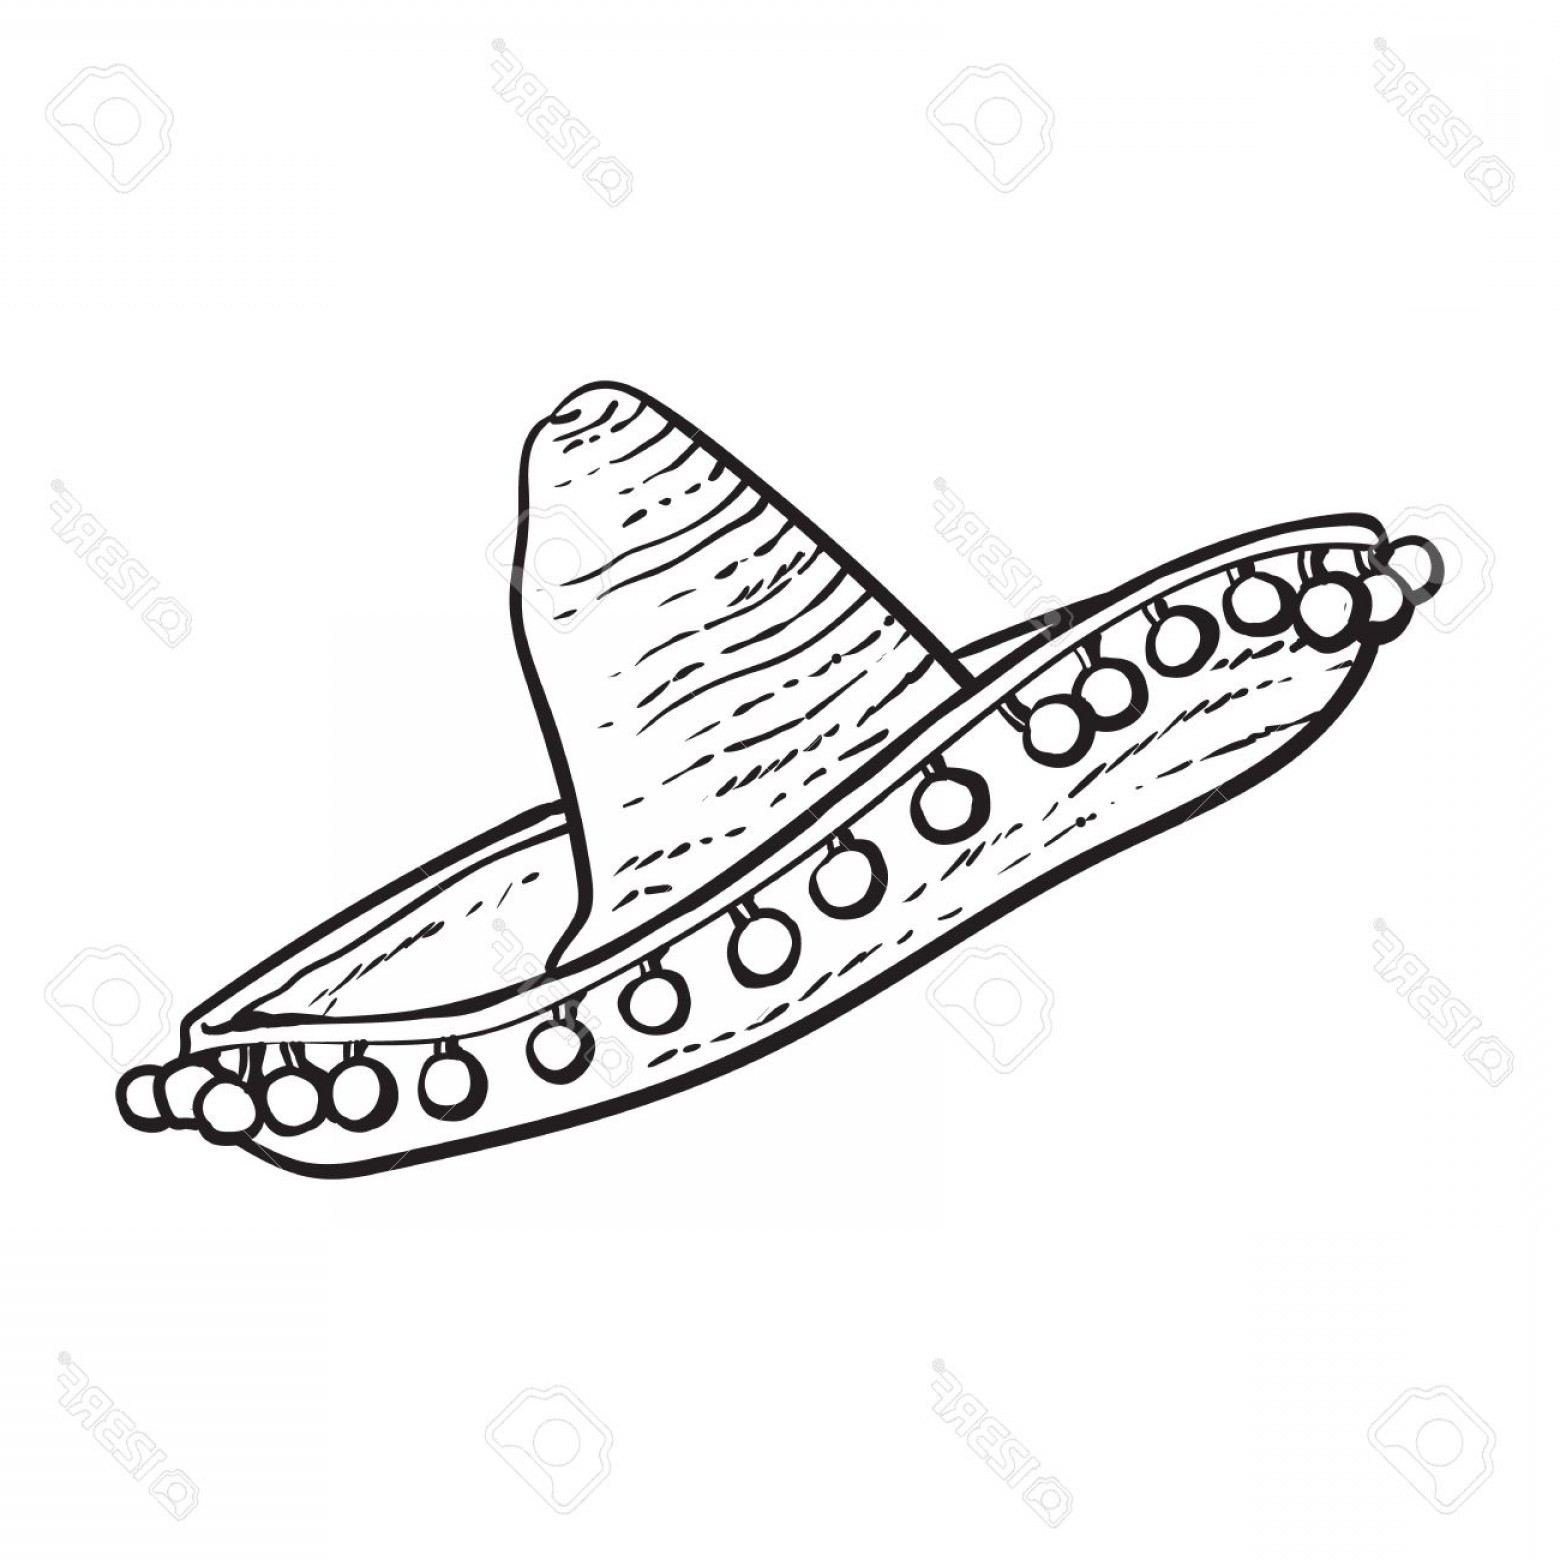 Sombrero Vector Outline: Photostock Vector Traditional Mexican Wide Brimmed Sombrero Hat Black And White Sketch Style Vector Illustration Isola